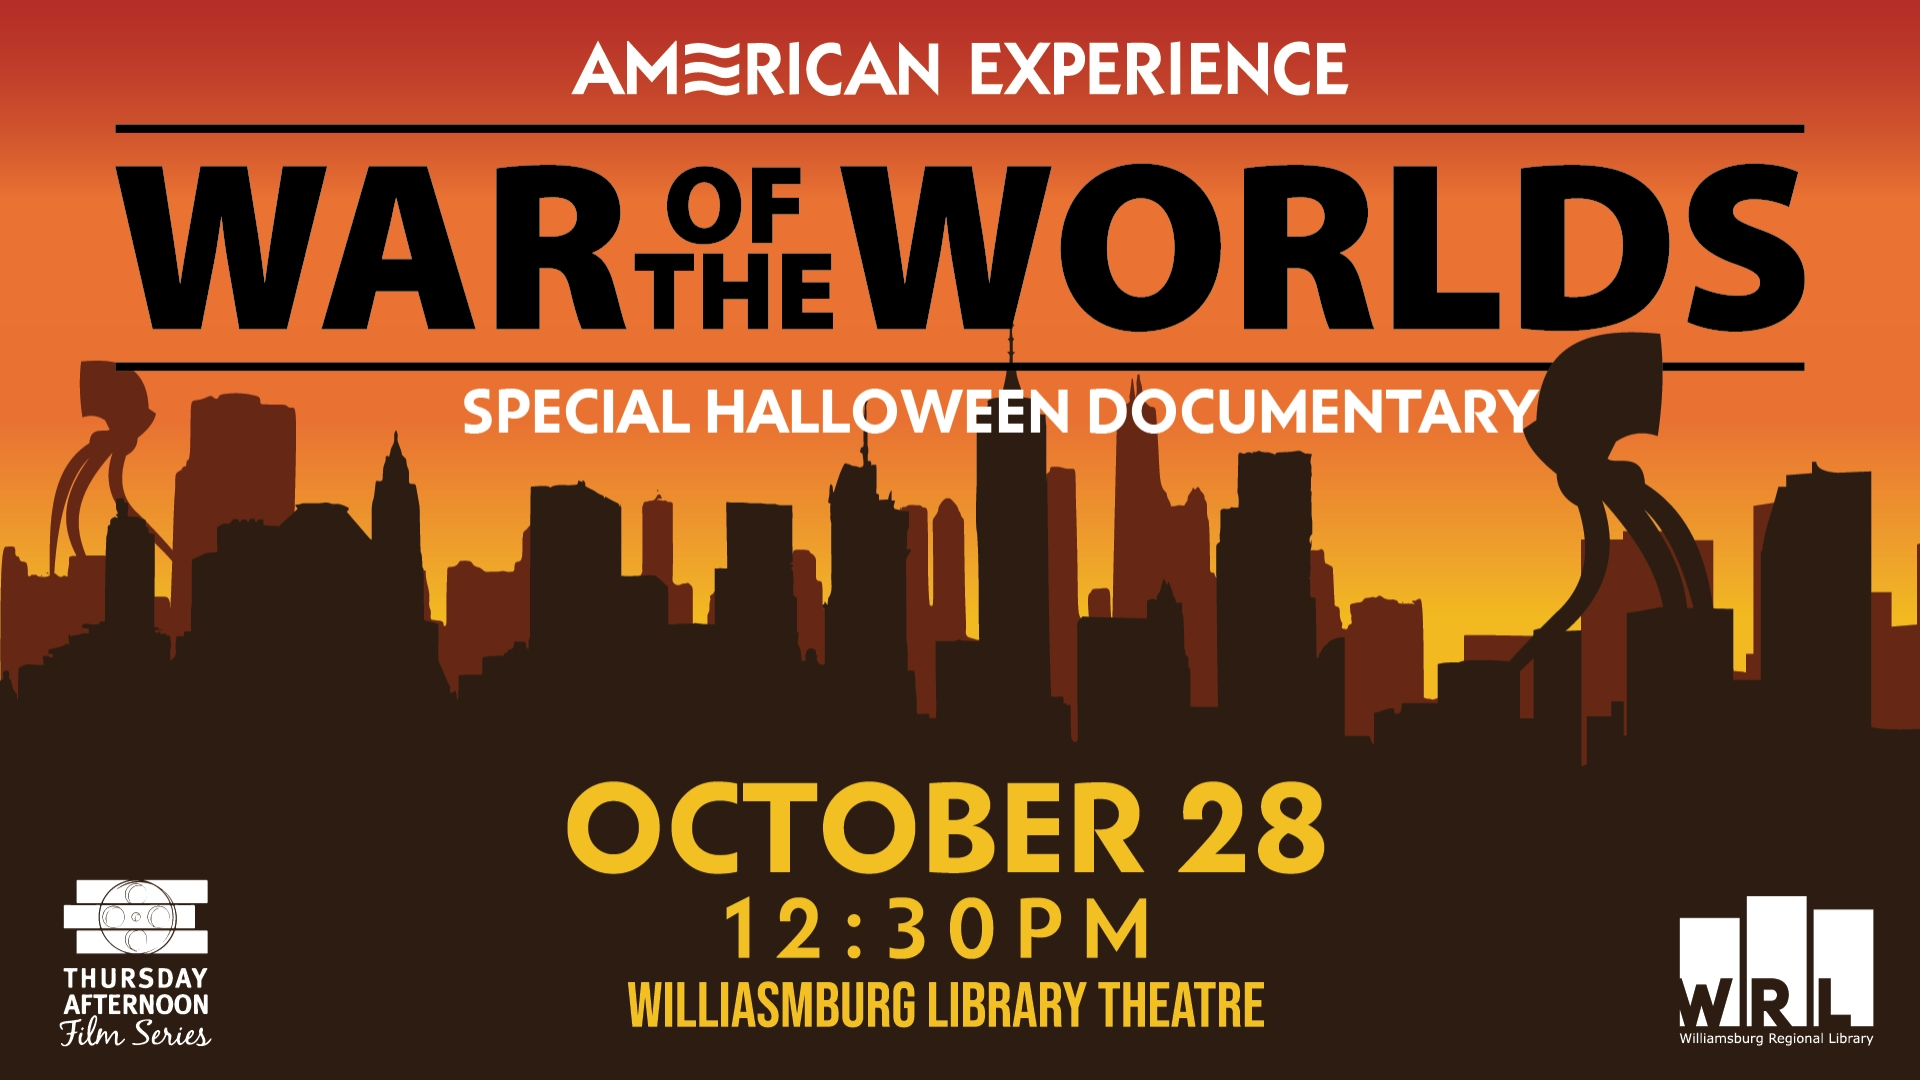 American Experience War of the Worlds special Halloween documentary October 28 12:30pm